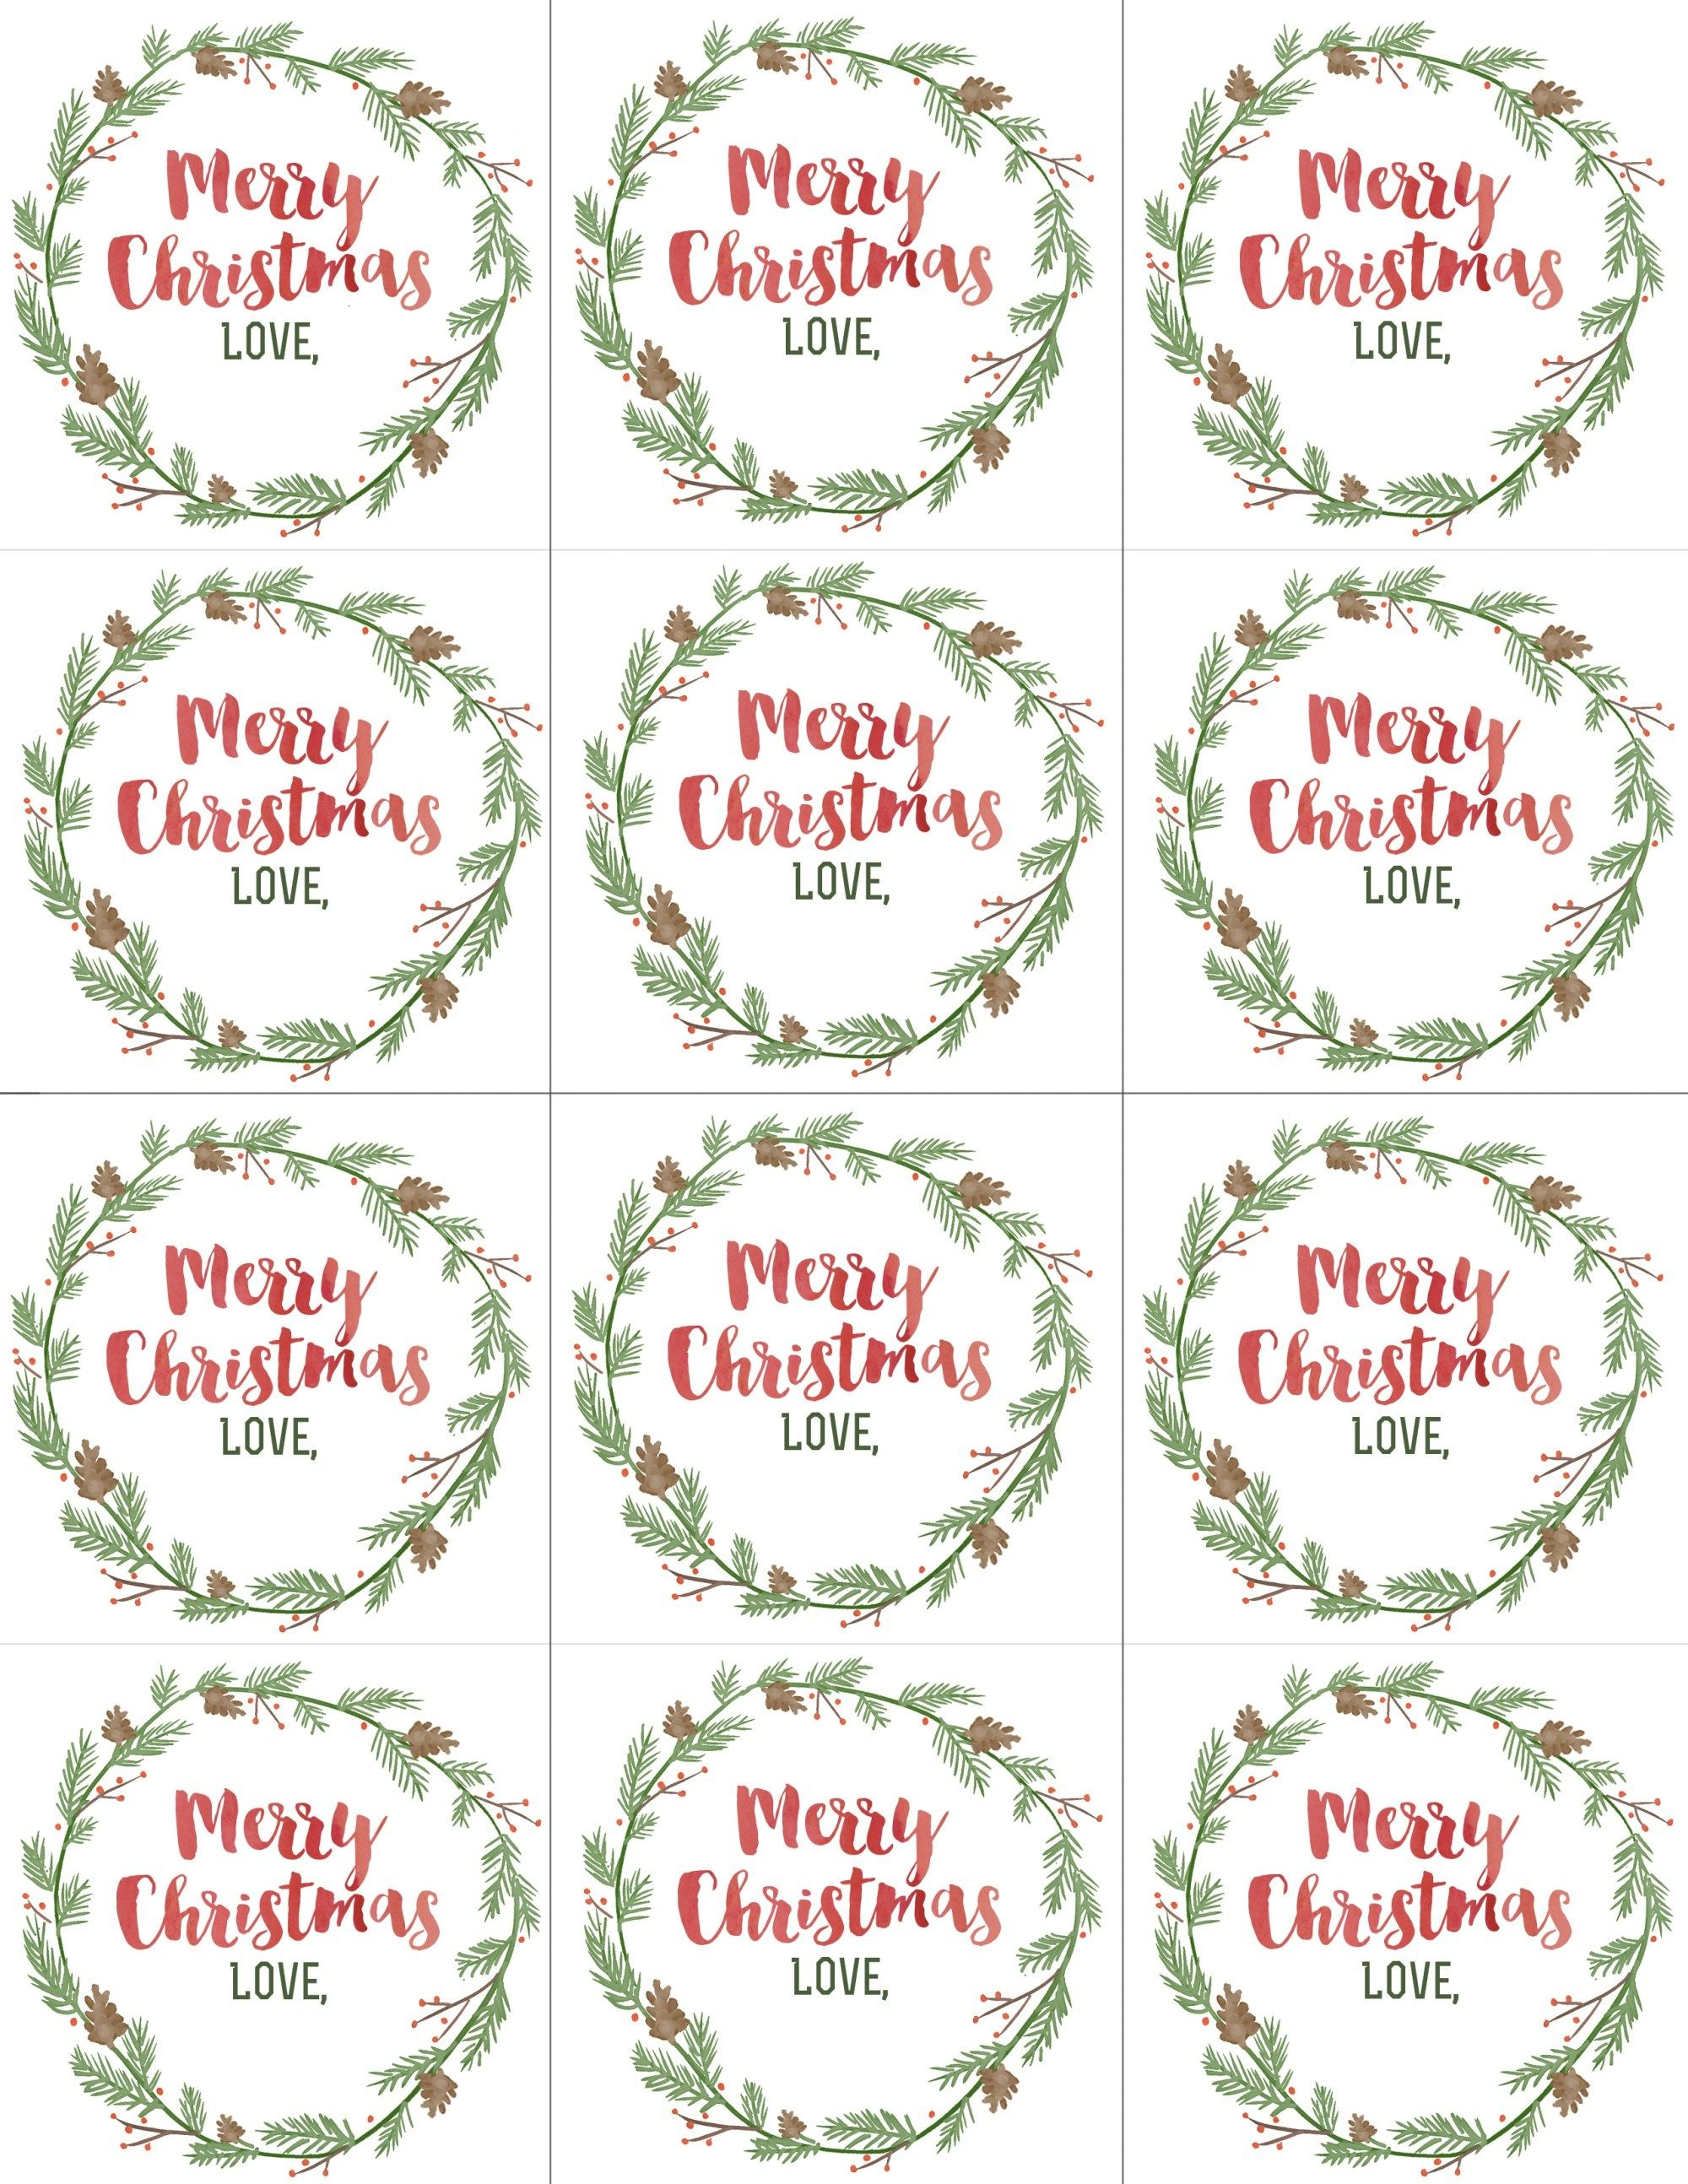 Hand Painted Gift Tags Free Printable | 2019 Christmas | Christmas - Free Printable Christmas Tags